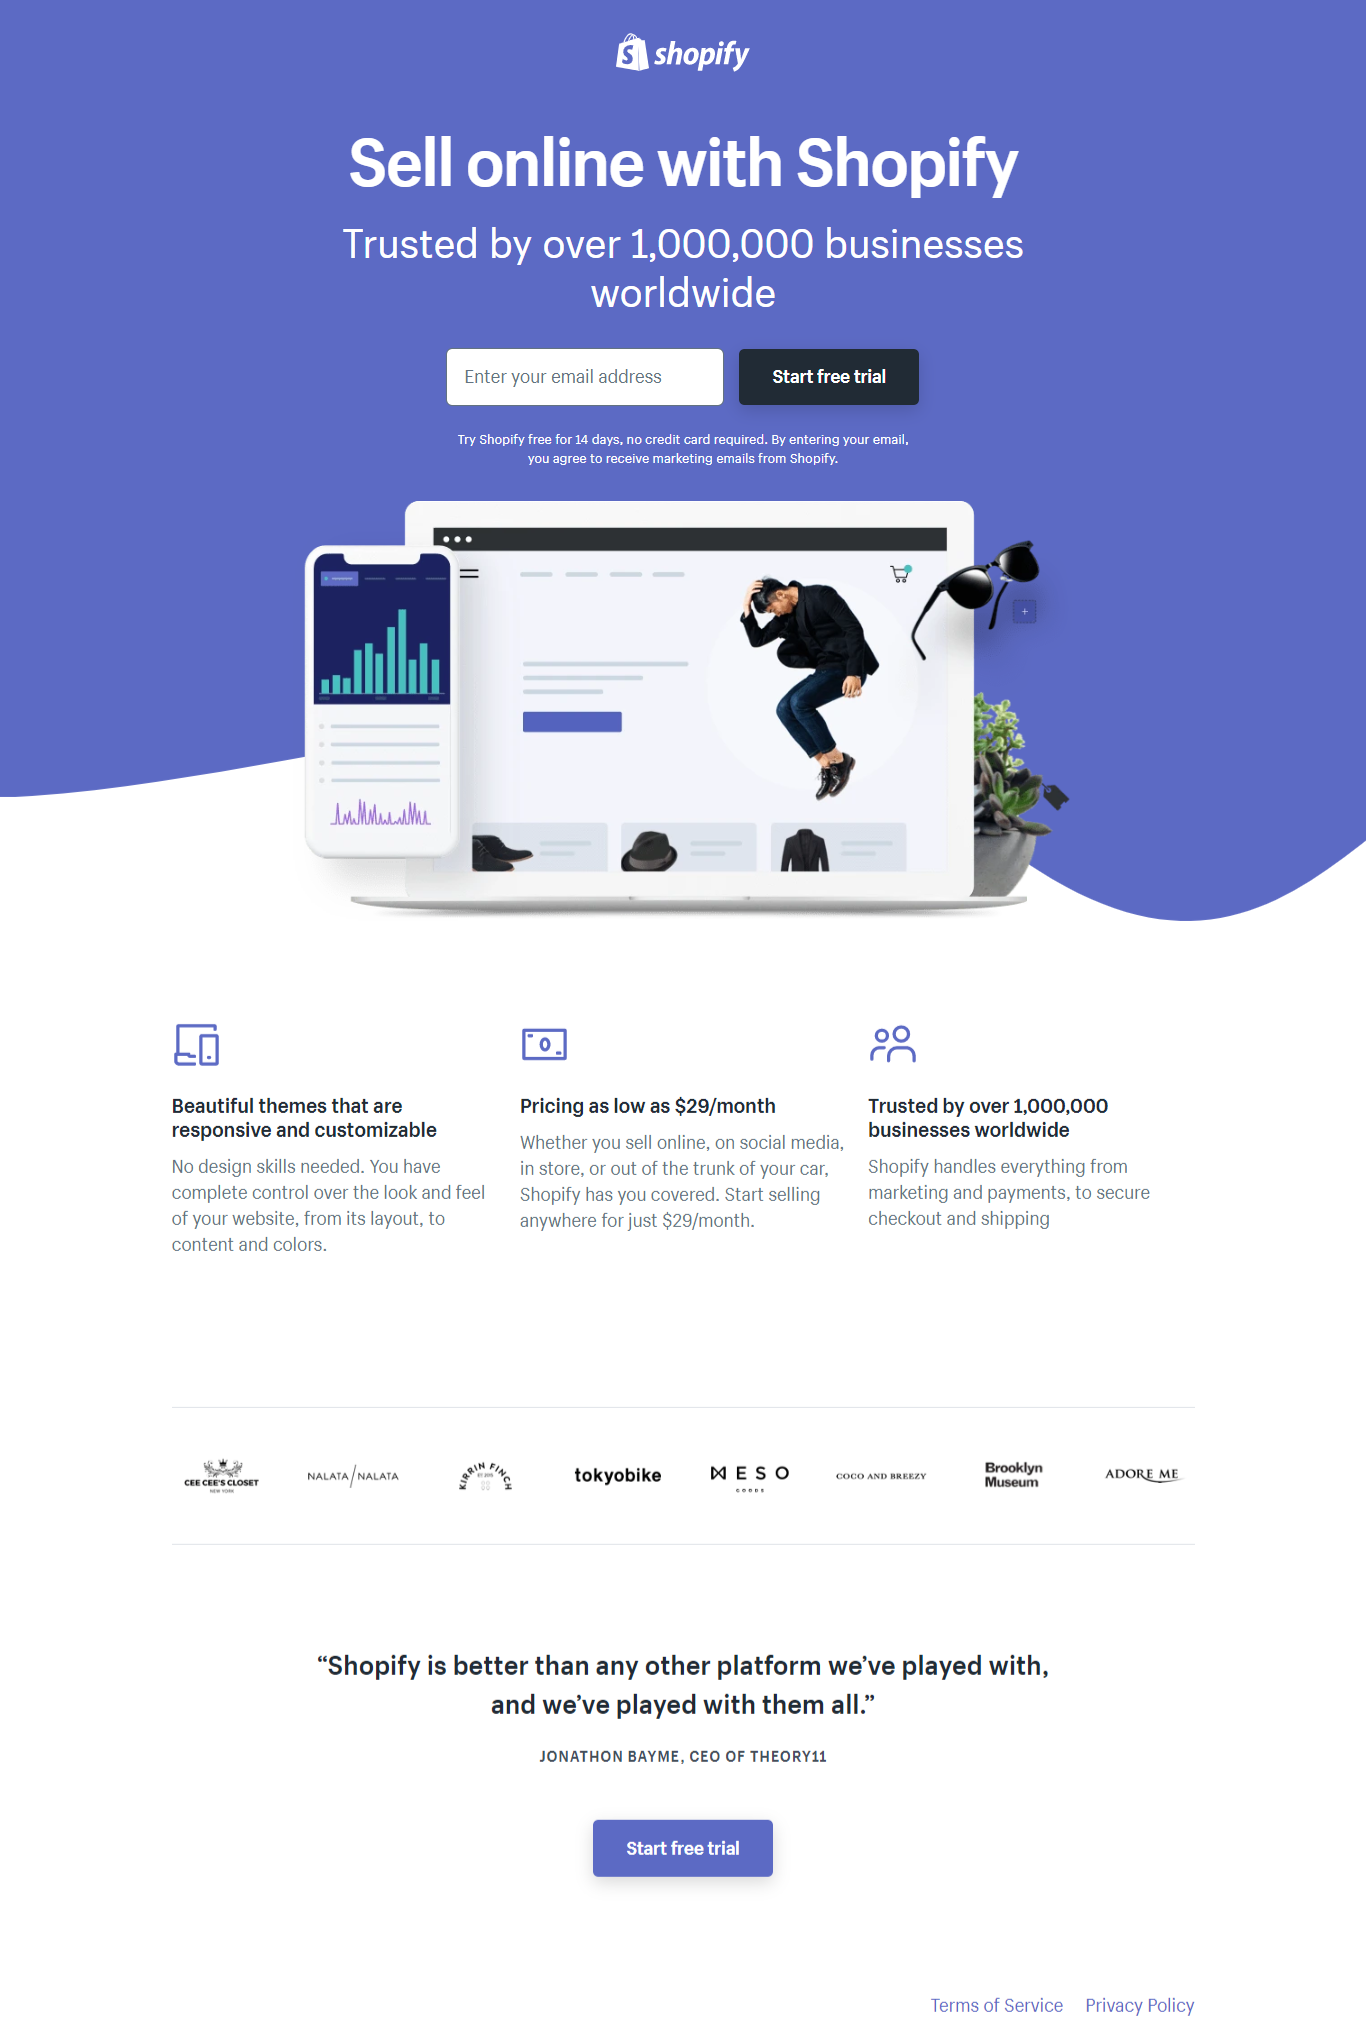 shopify free trial landing page example